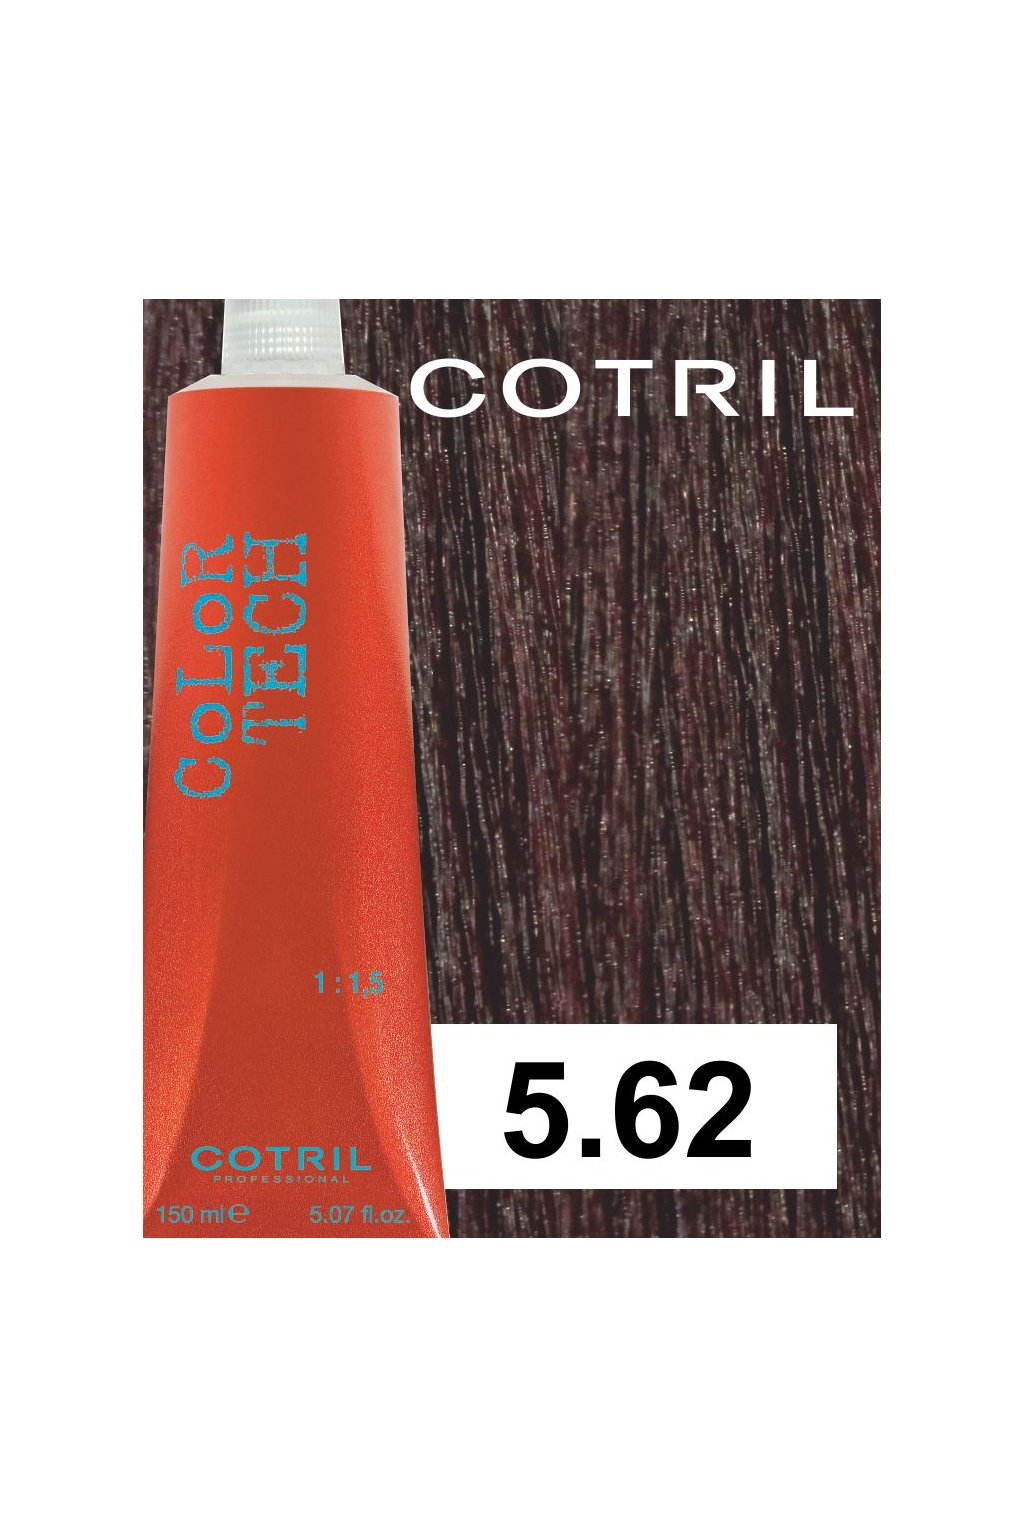 5 62 ct cotril